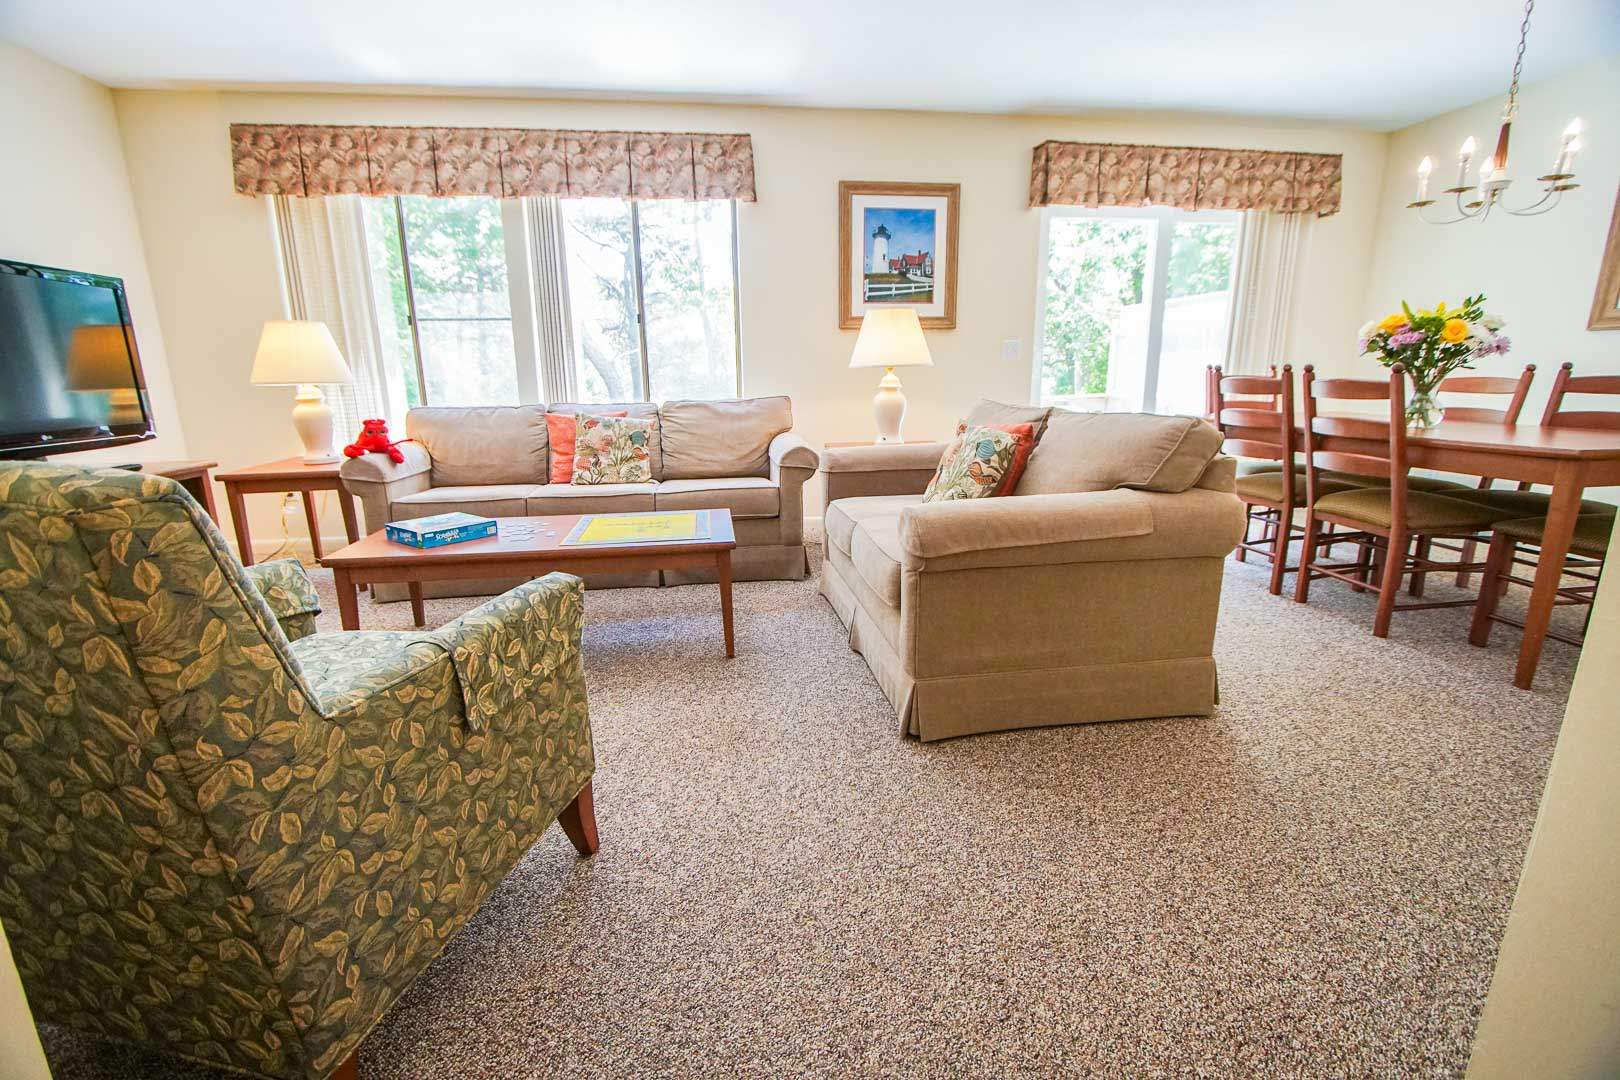 A cozy living and dining room area at VRI's Brewster Green Resort in Massachusetts.